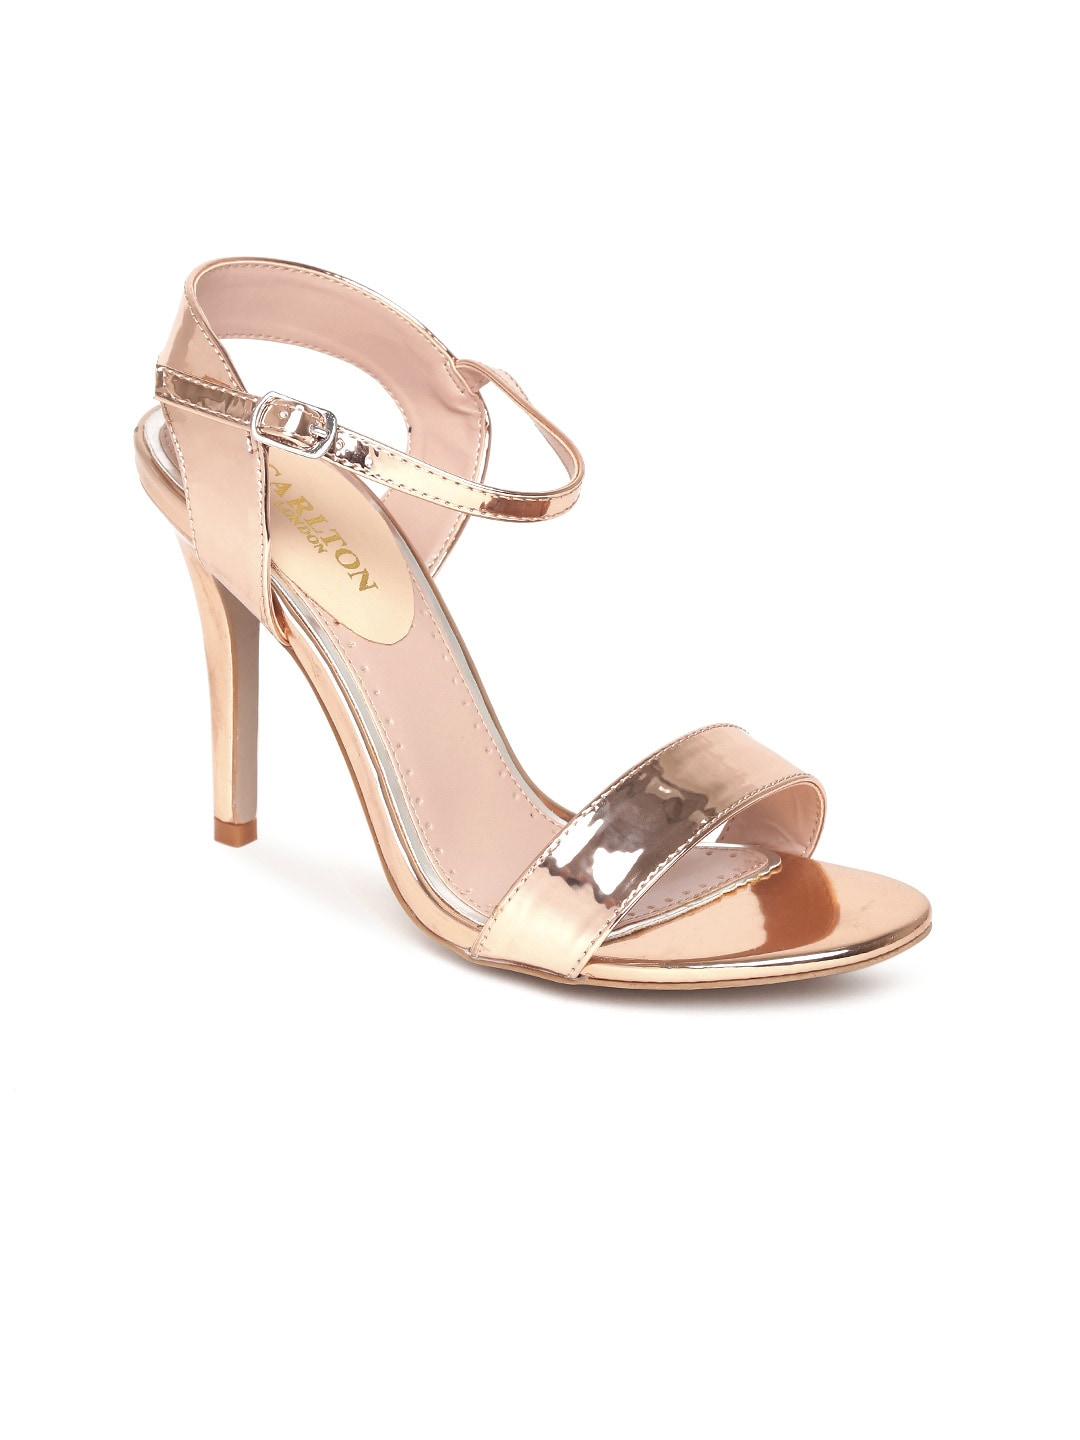 Carlton London Women Gold-Toned Solid Sandals image